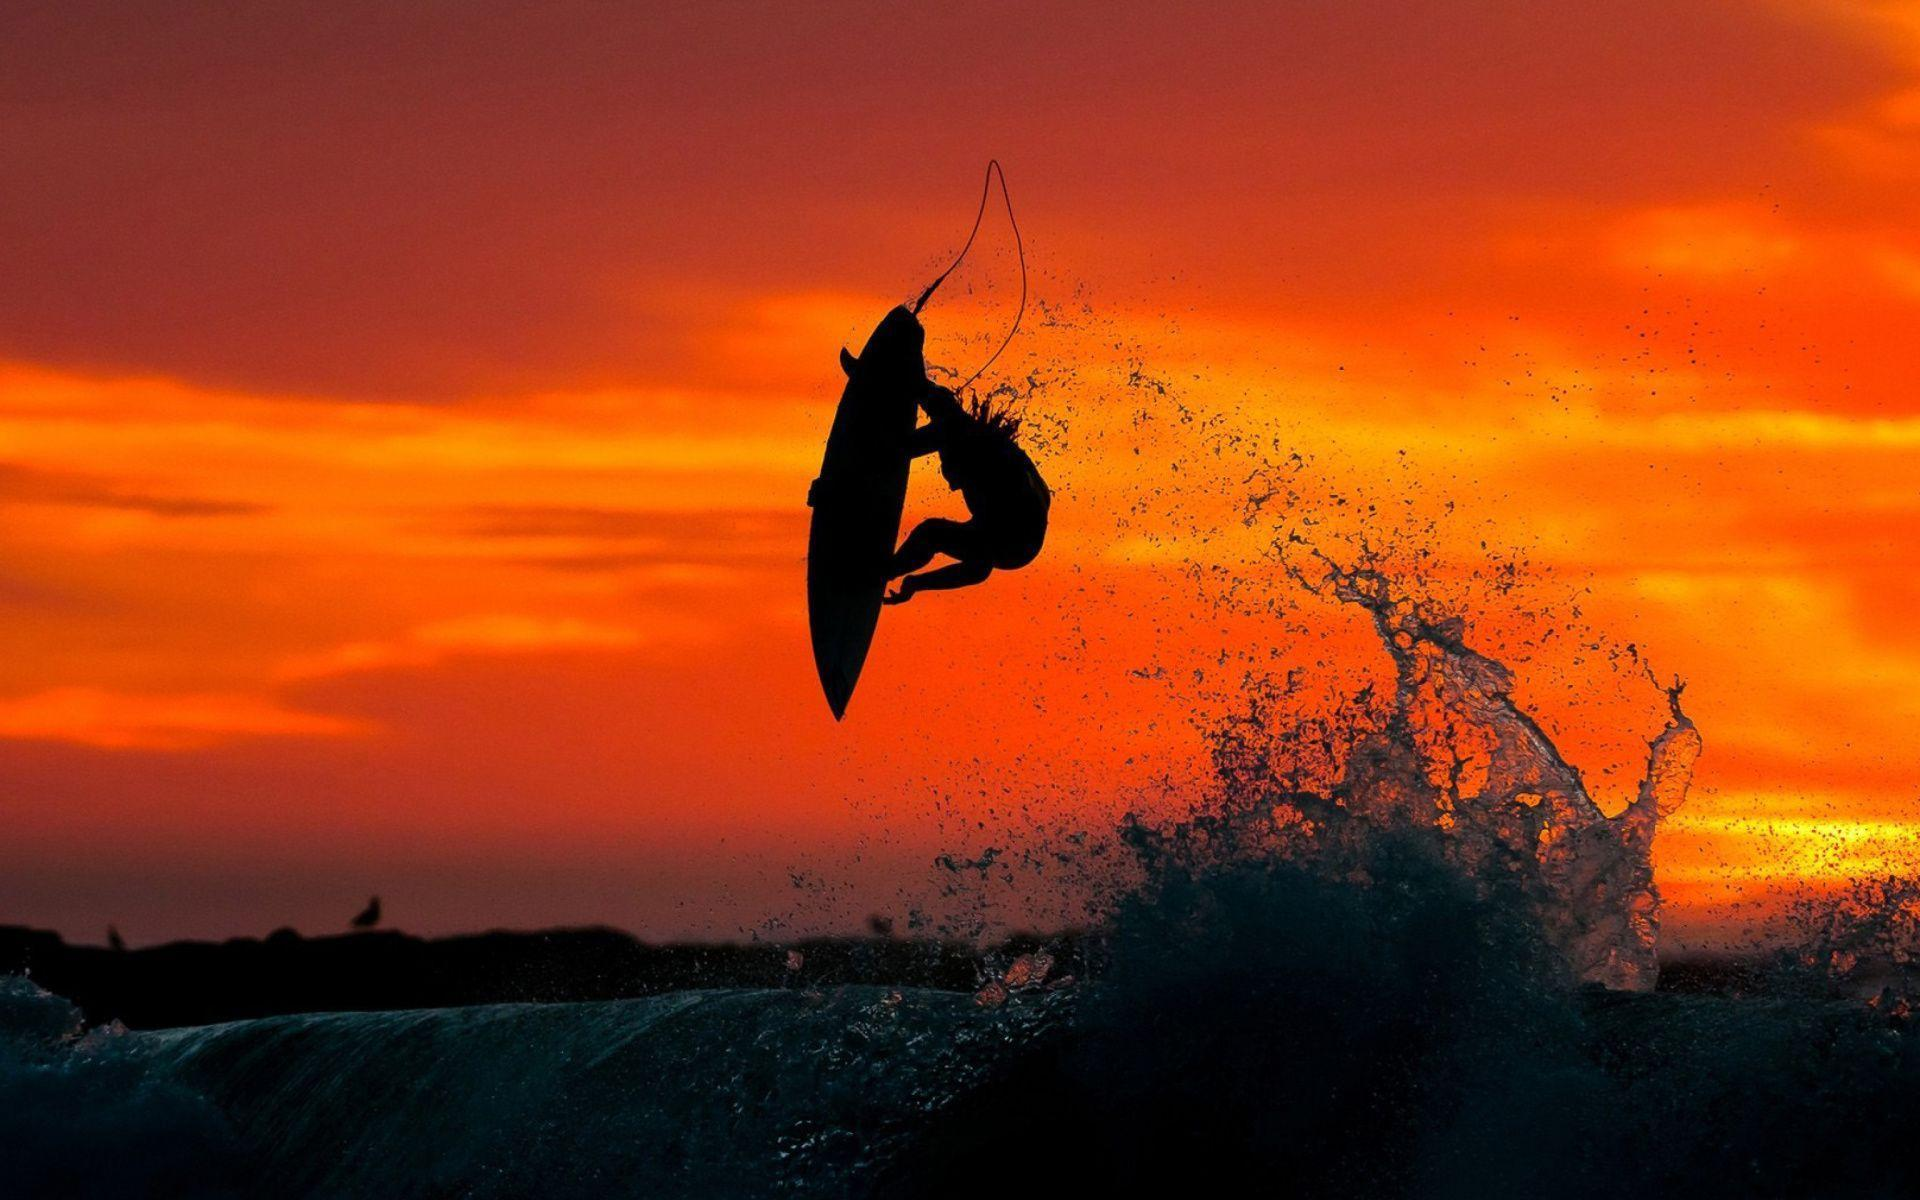 Surfing Wallpapers : sports Wallpaper - Horadent.com